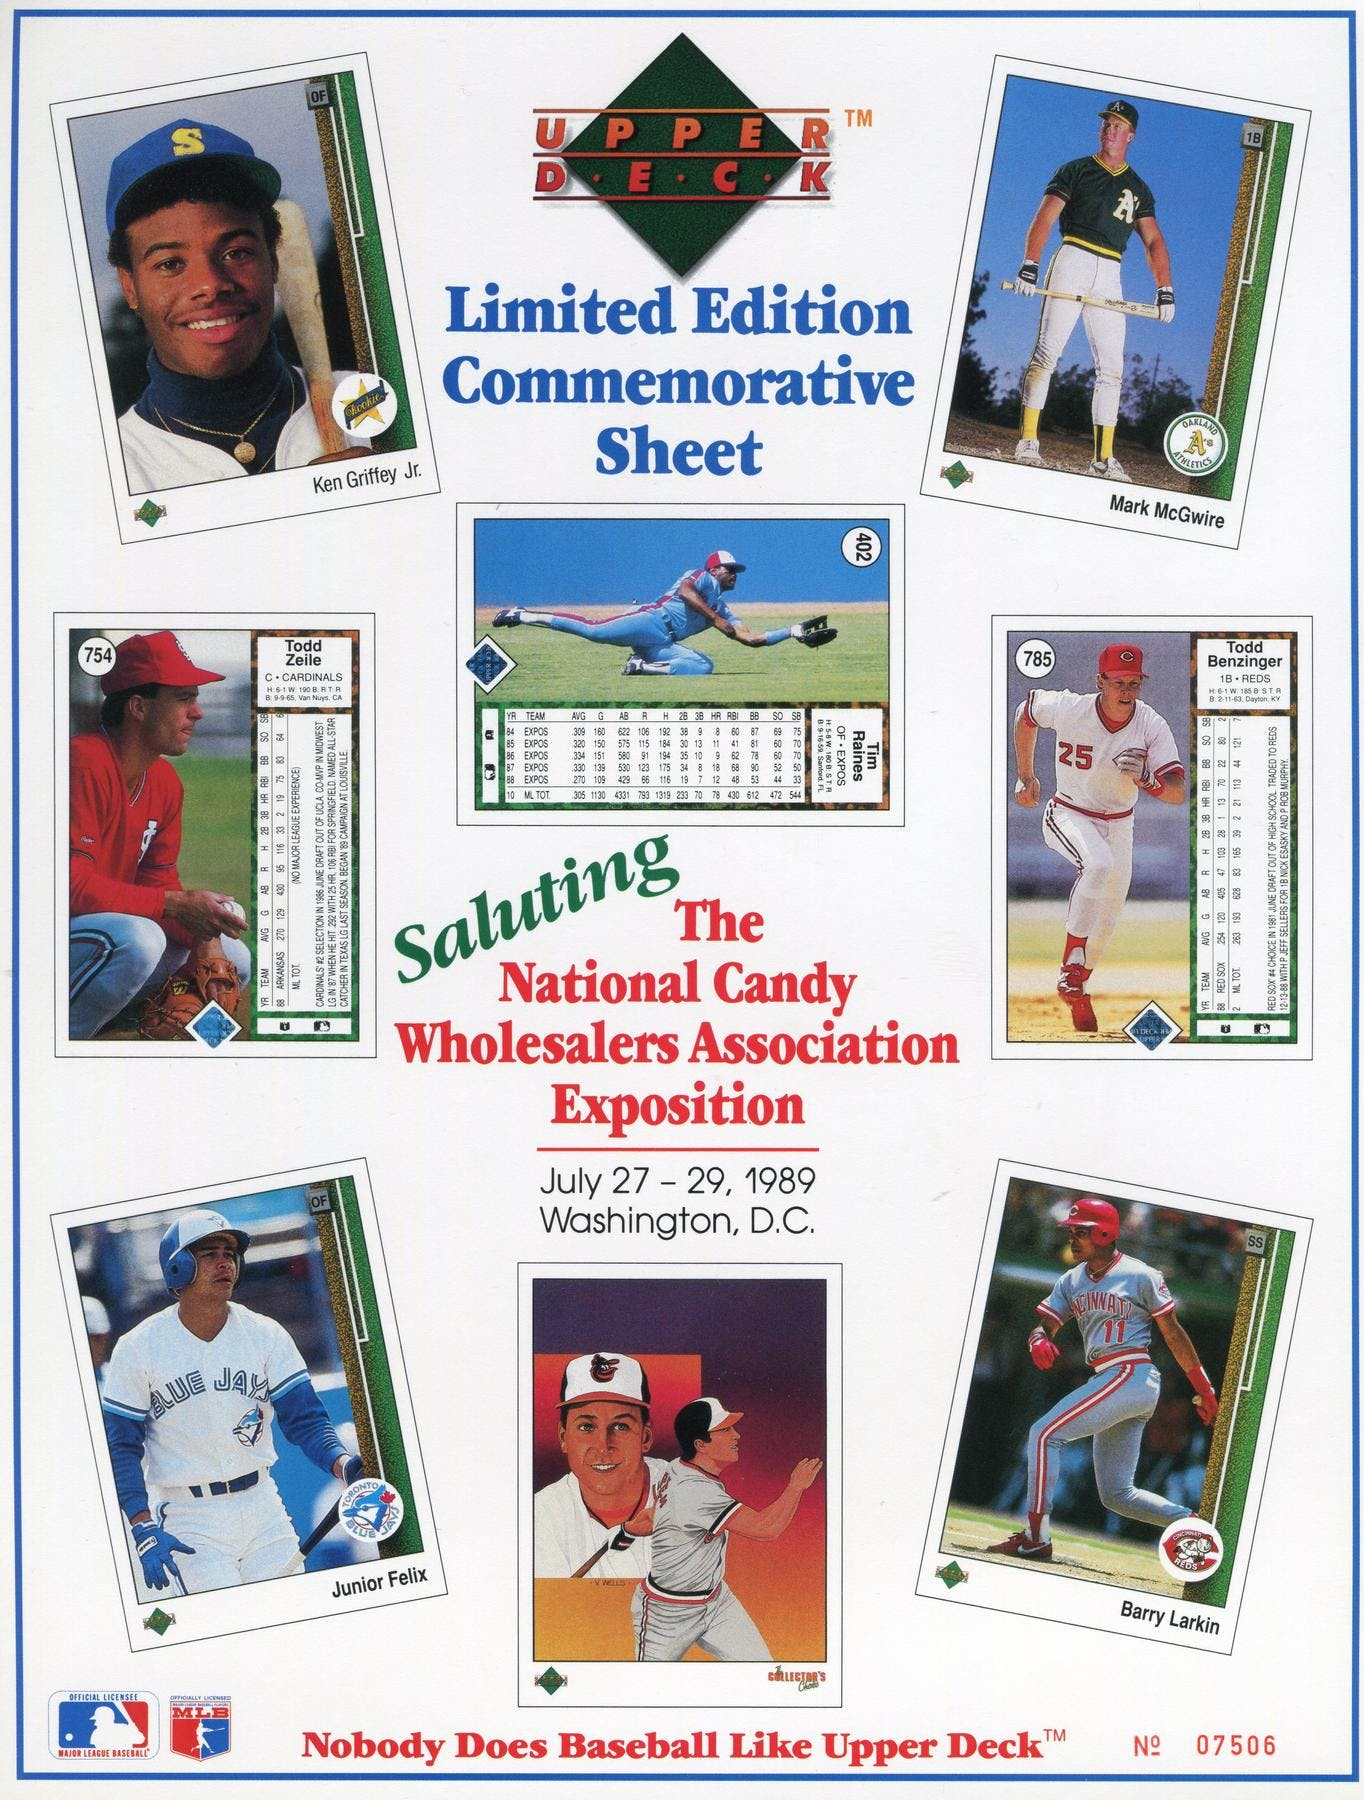 1989 Upper Deck The First Limited Edition Commemorative Sheet With Griffey Jr Rookie